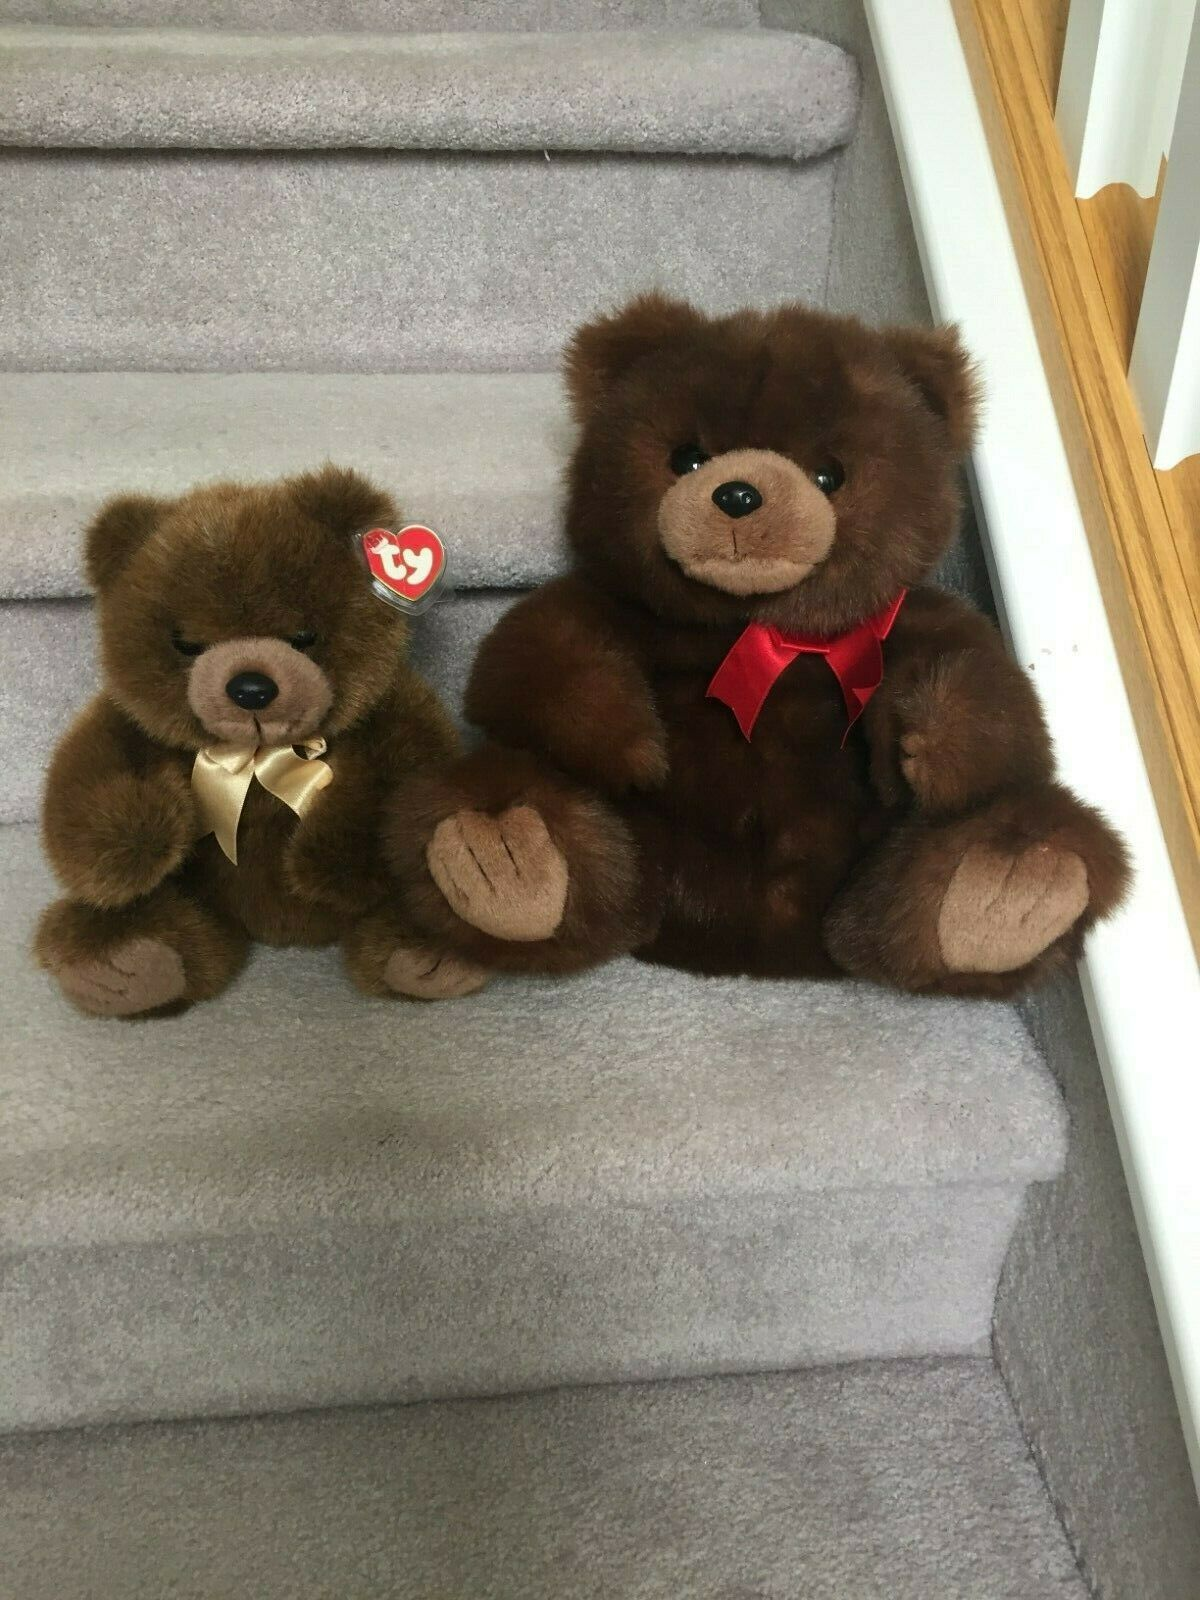 2 Rare Retired Ty Plush Classic Bears 14  McGee and 10  Magee MWMT